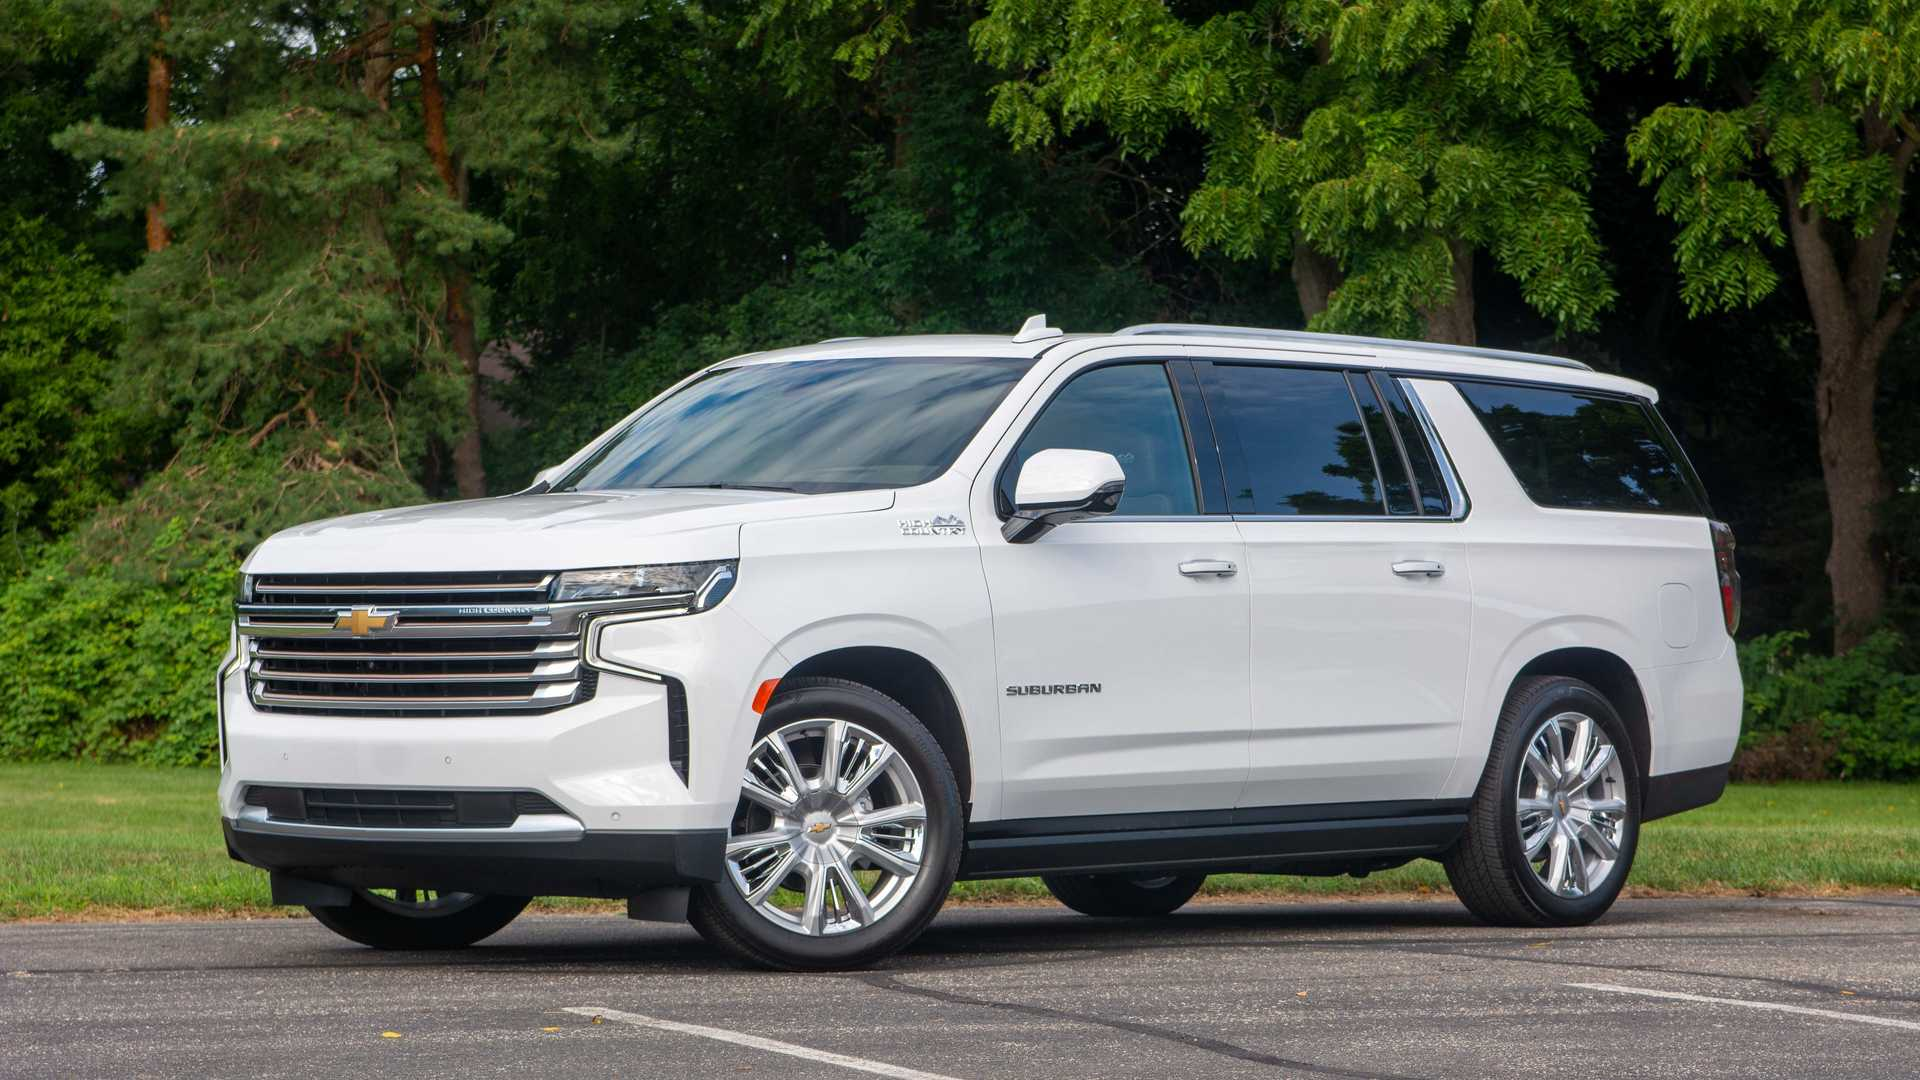 Photos When Will The 2021 Chevrolet Suburban Be Released